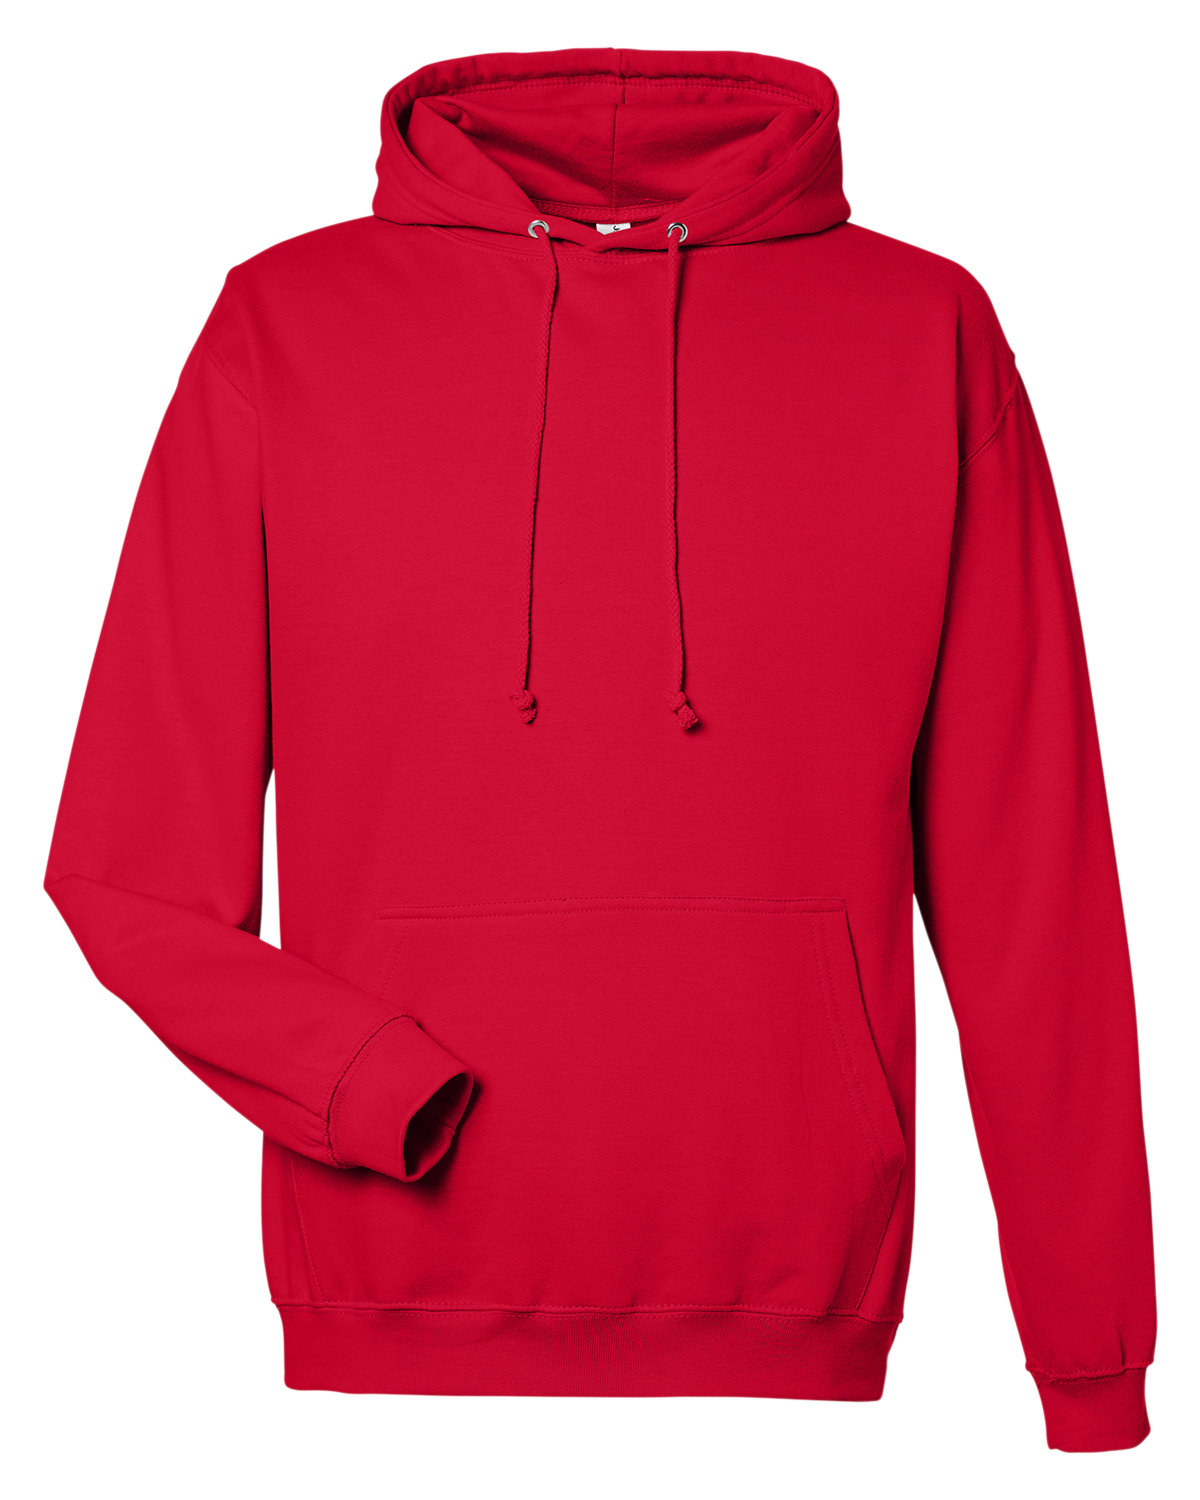 Just Hoods By AWDis Men's 80/20 Midweight College Hooded Sweatshirt FIRE RED